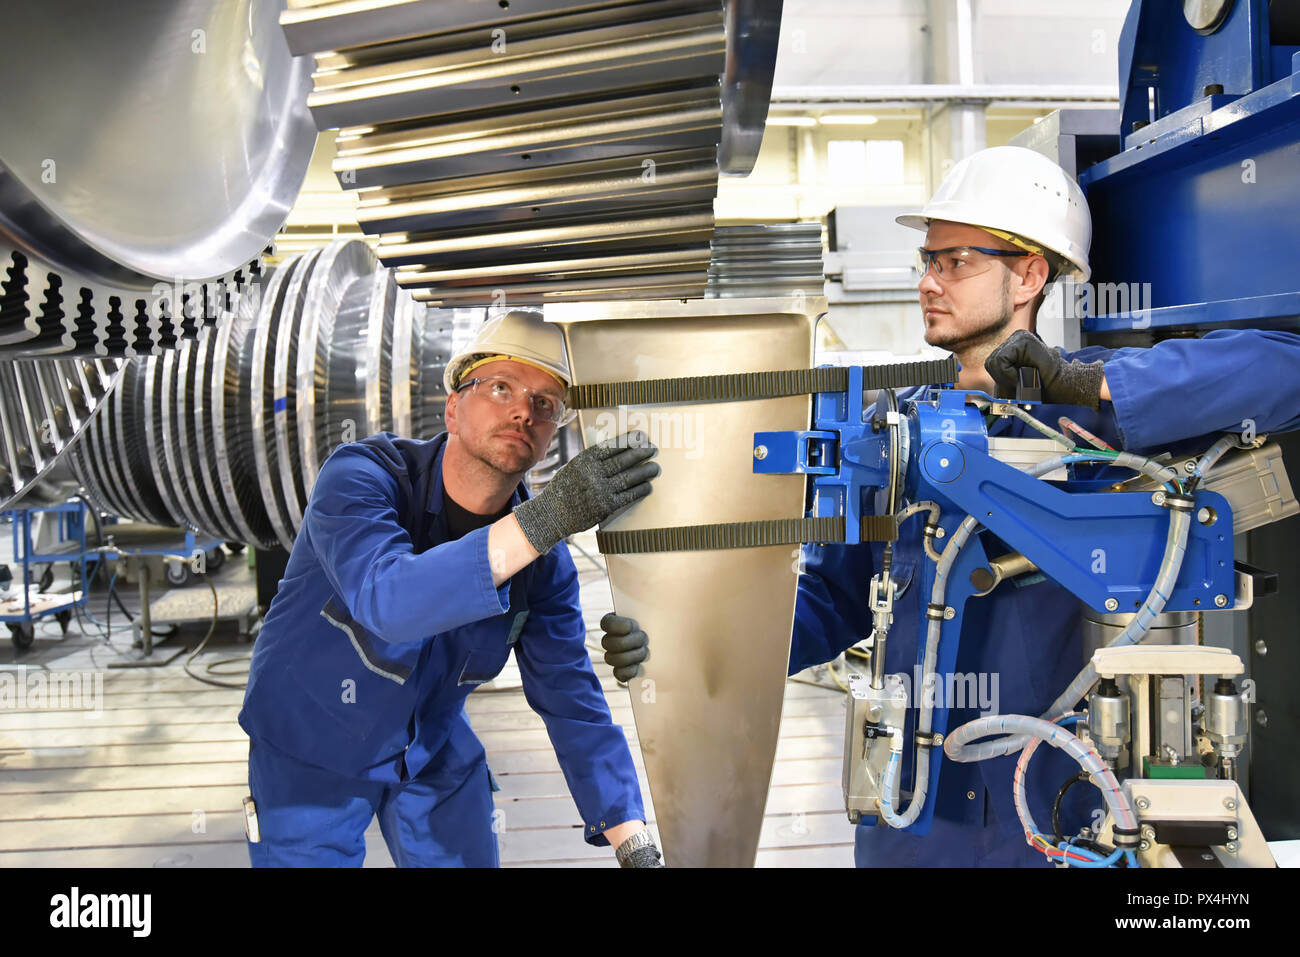 Teamwork - workers manufacturing steam turbines in an industrial factory - Stock Image